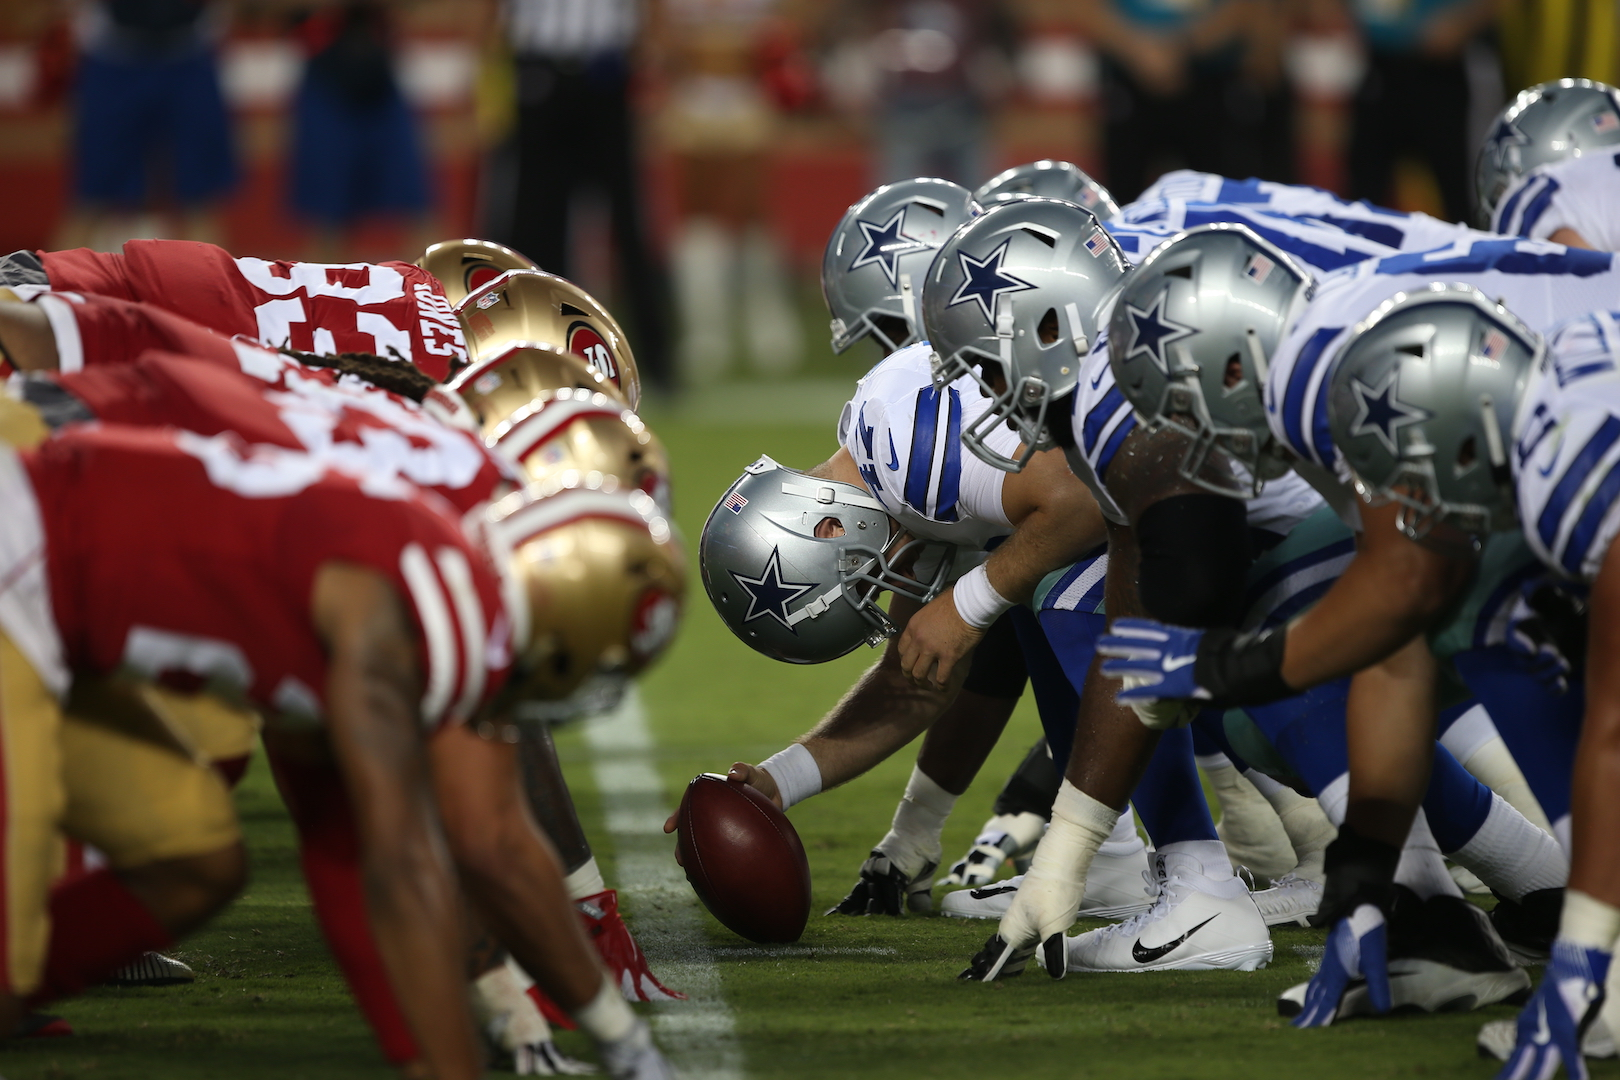 San Francisco 49ers vs CowboysPhotos by Tod Fierner( Martinez News-Gazette )